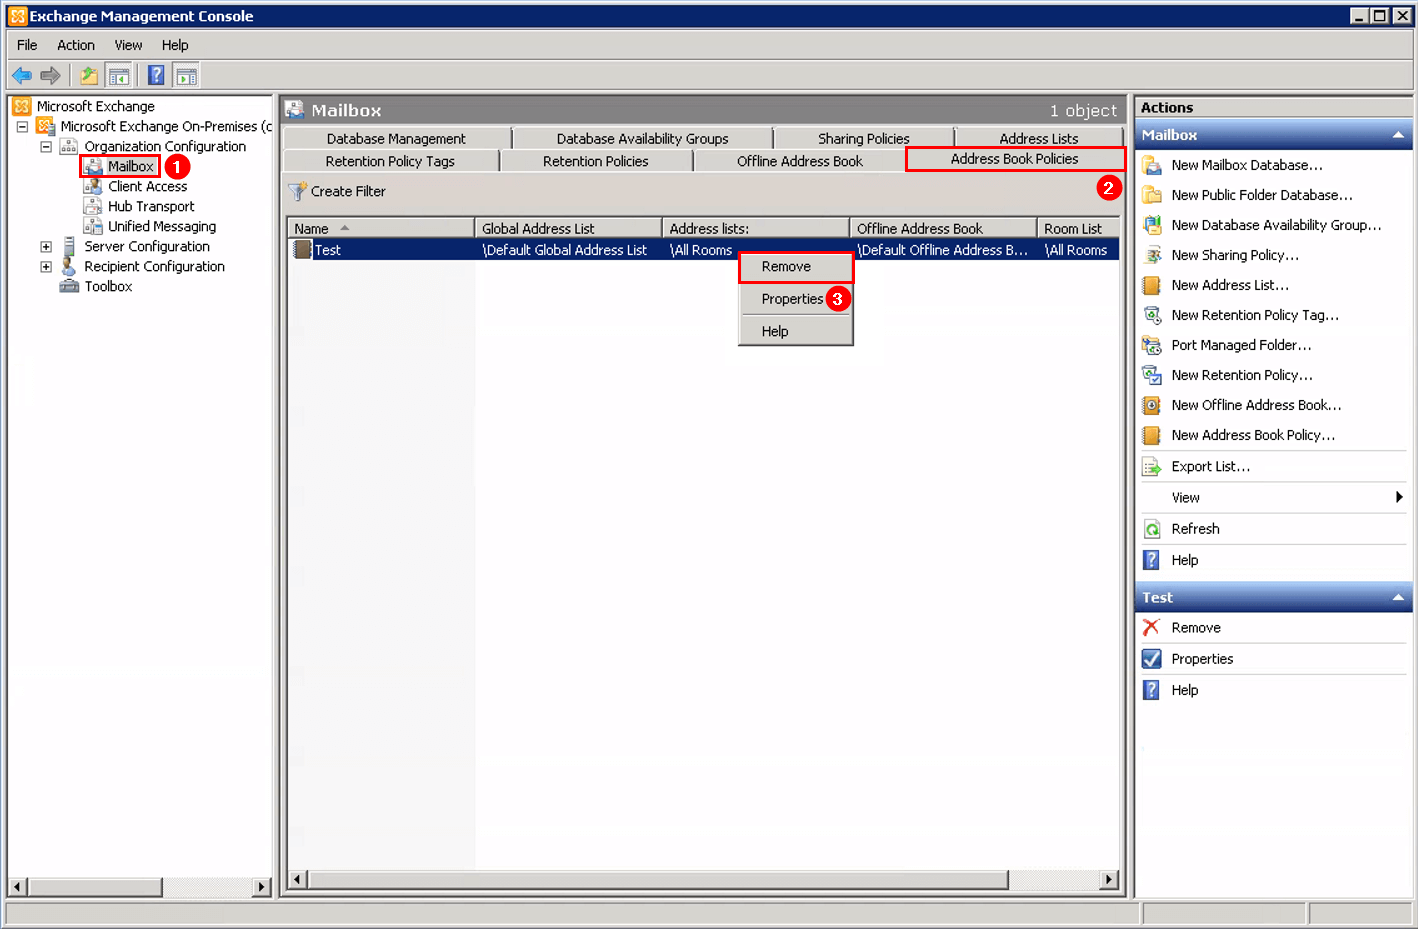 Remove Offline Address Book (OAB) in Exchange remove address book policy